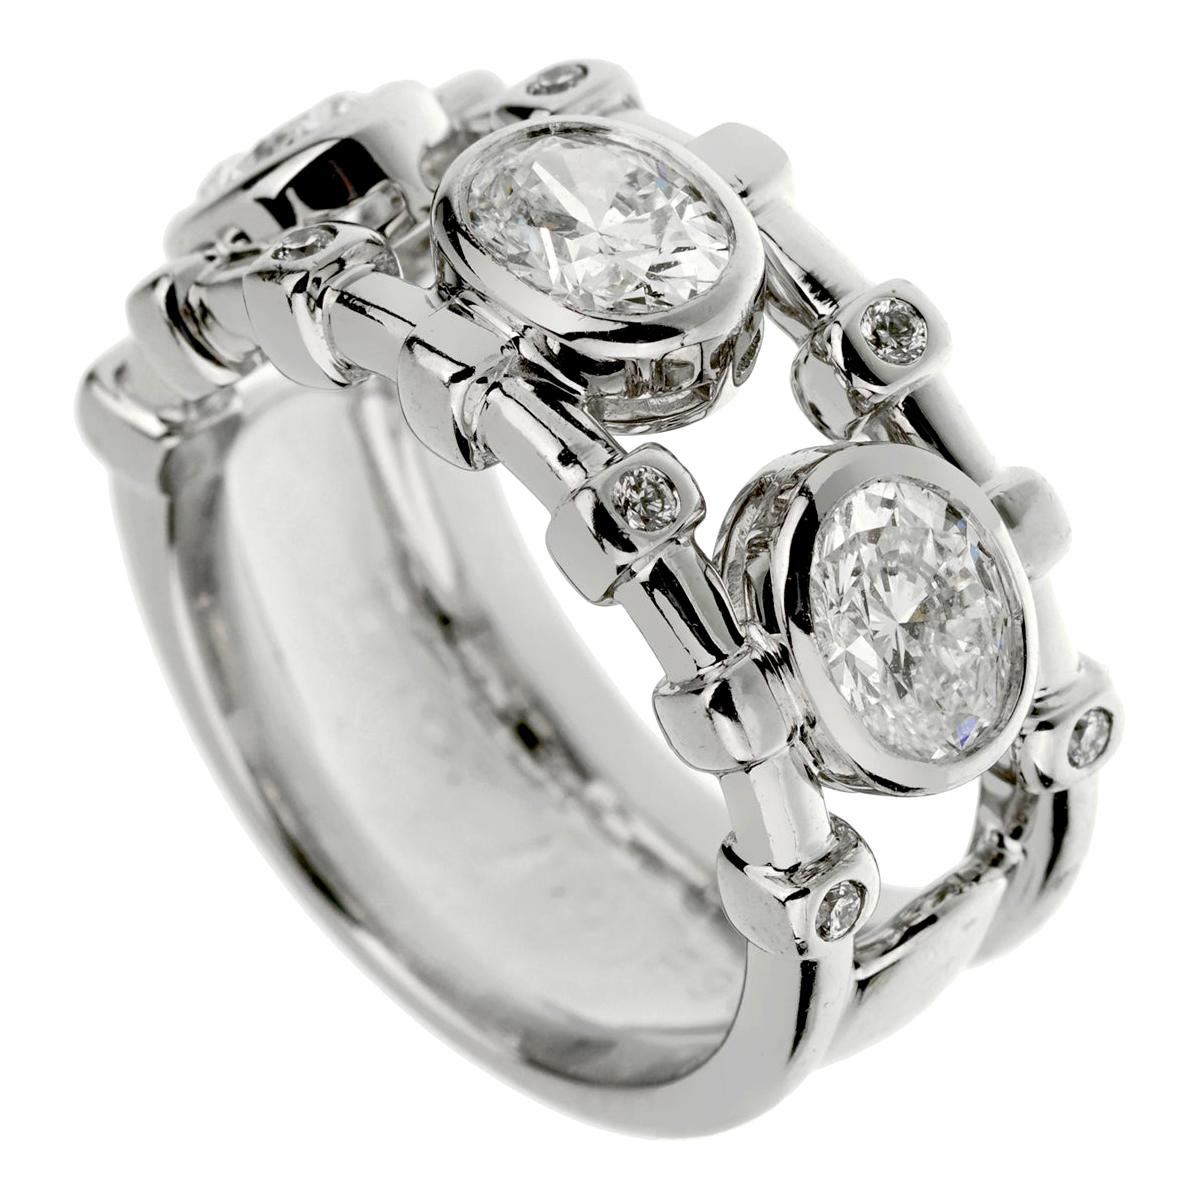 Christian Dior Oval Diamond Cocktail White Gold Ring